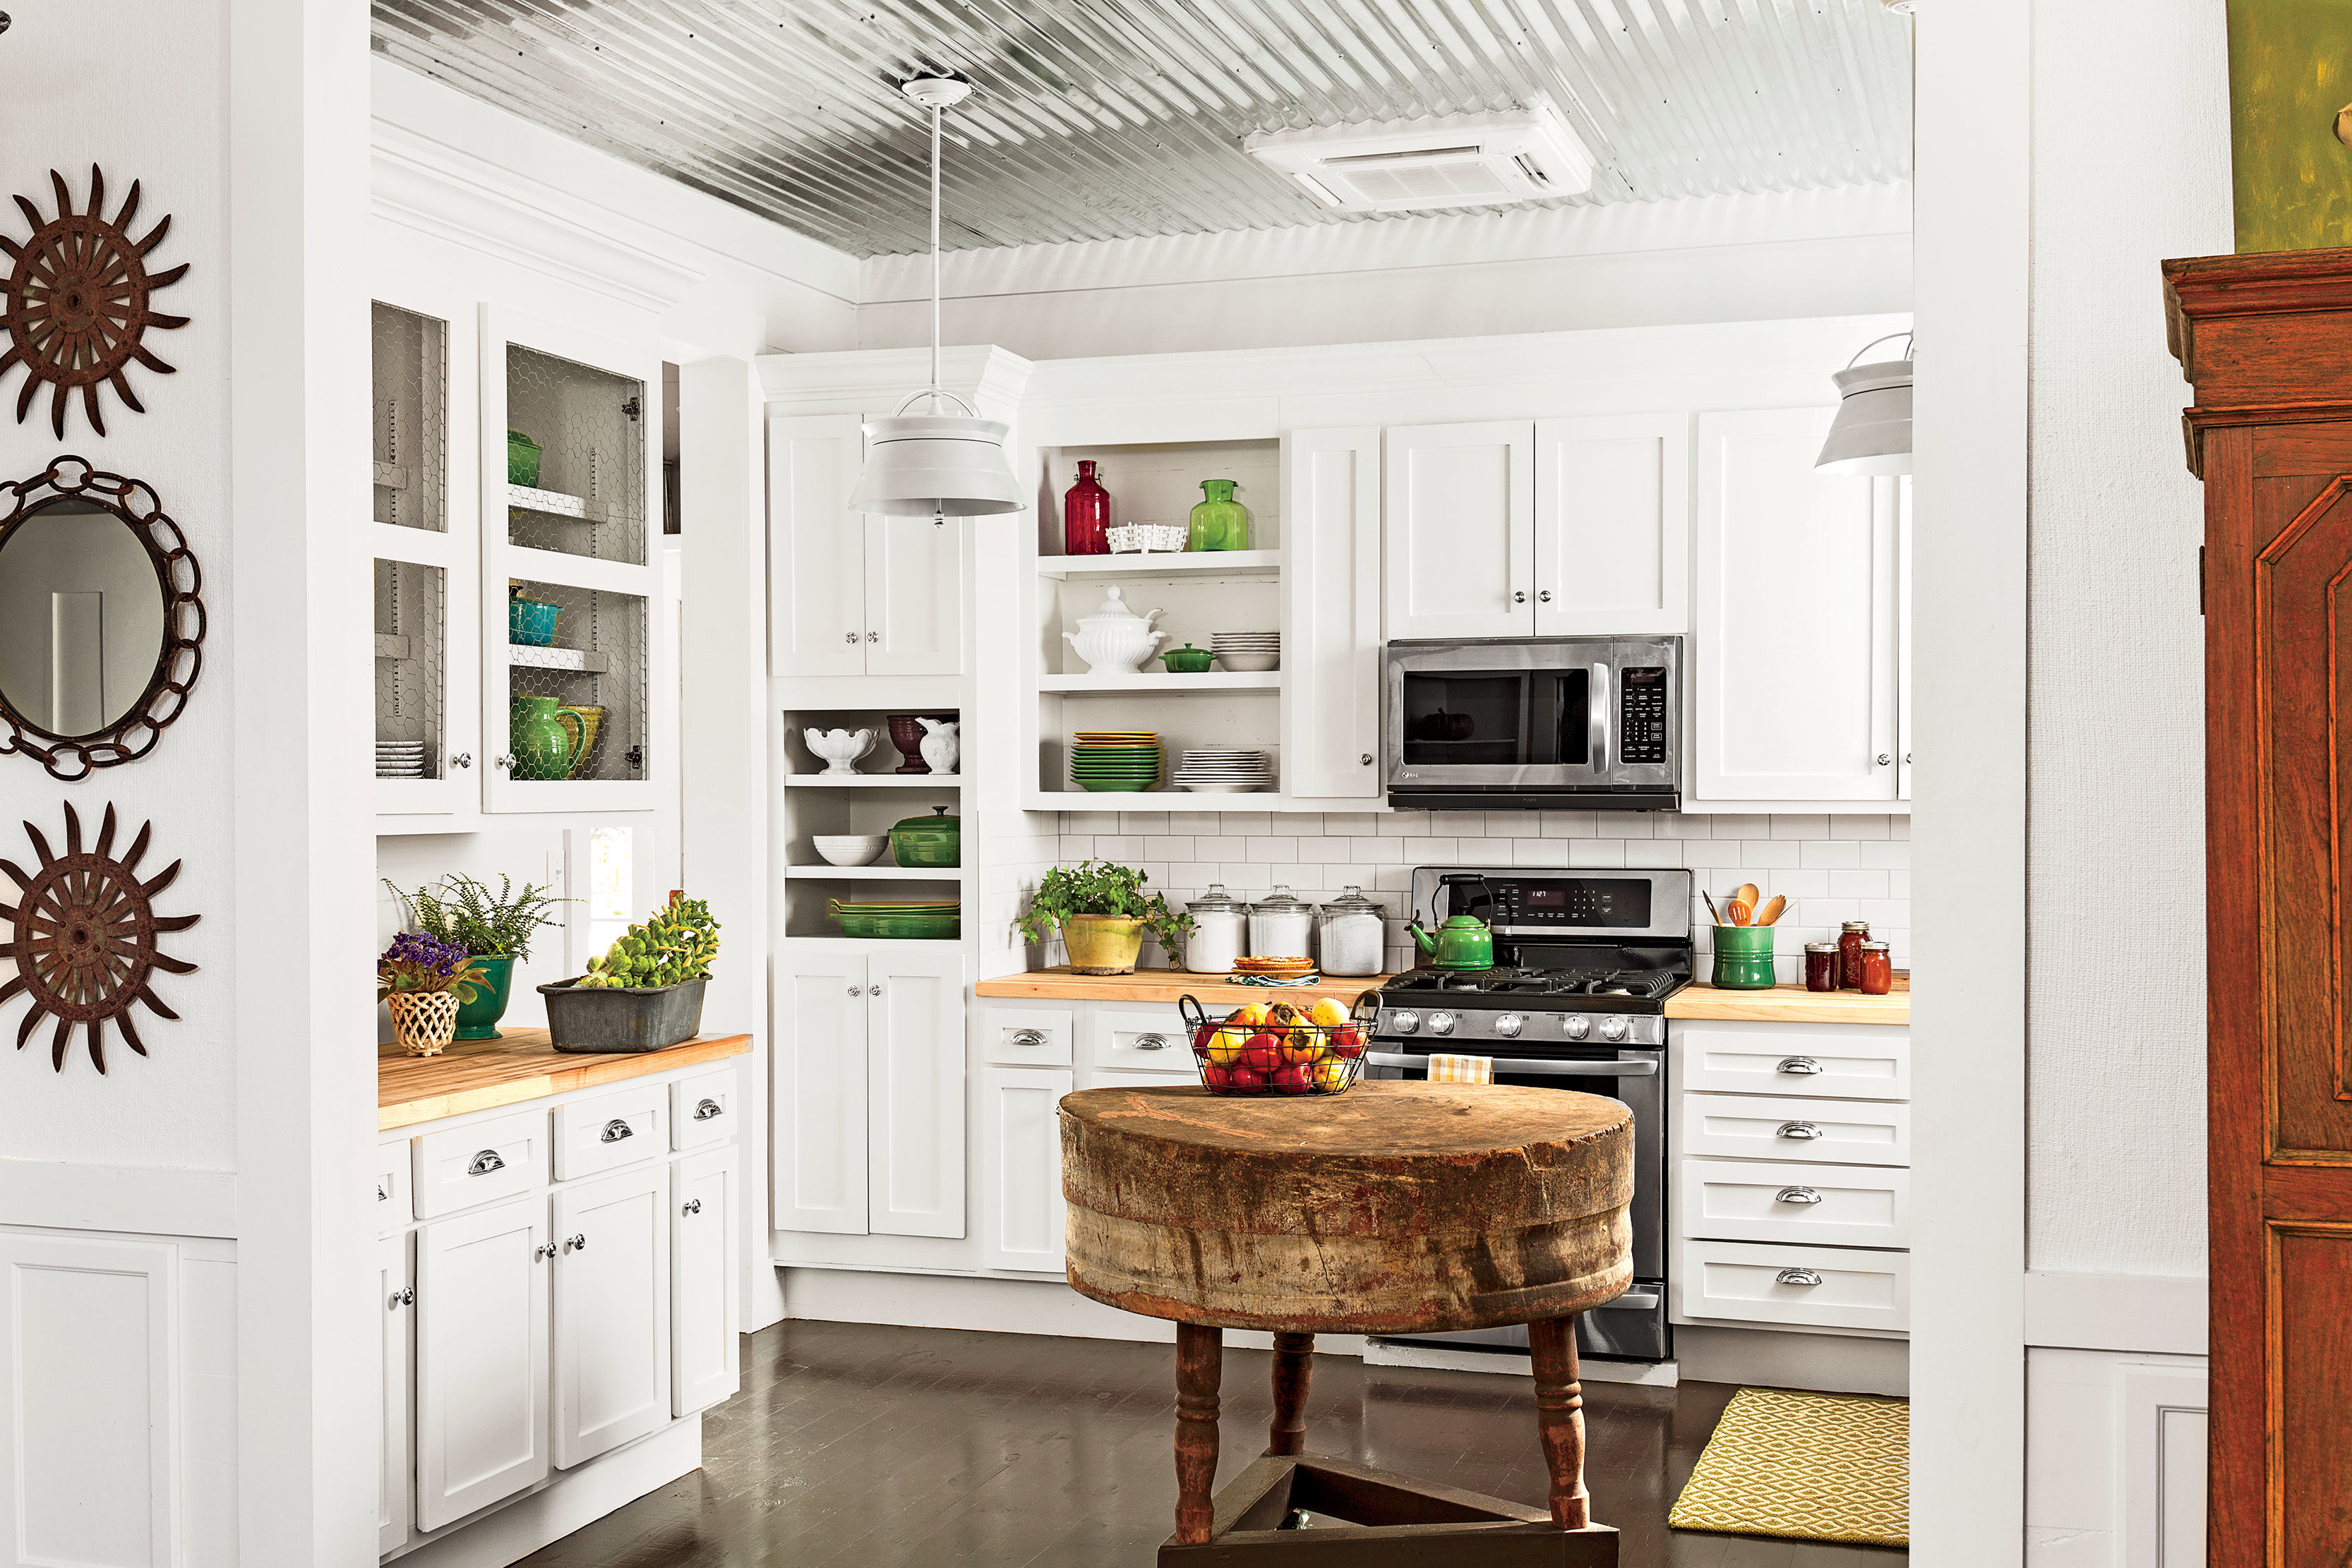 Creative Kitchen Cabinet Ideas on funny kitchen cabinets, unique kitchen cabinets, untraditional kitchen cabinets, country kitchen cabinets, alternative kitchen cabinets, homemade kitchen cabinets, independent kitchen cabinets, rustic kitchen cabinets, old farmhouse kitchen cabinets, unusual kitchen cabinets, kitchen pantry cabinets, funky painted kitchen cabinets, playful kitchen cabinets, kitchen storage cabinets, utilitarian kitchen cabinets, crazy kitchen cabinets, fresh kitchen cabinets, refurbished kitchen cabinets, using furniture as kitchen cabinets, new kitchen colors that go with oak cabinets,